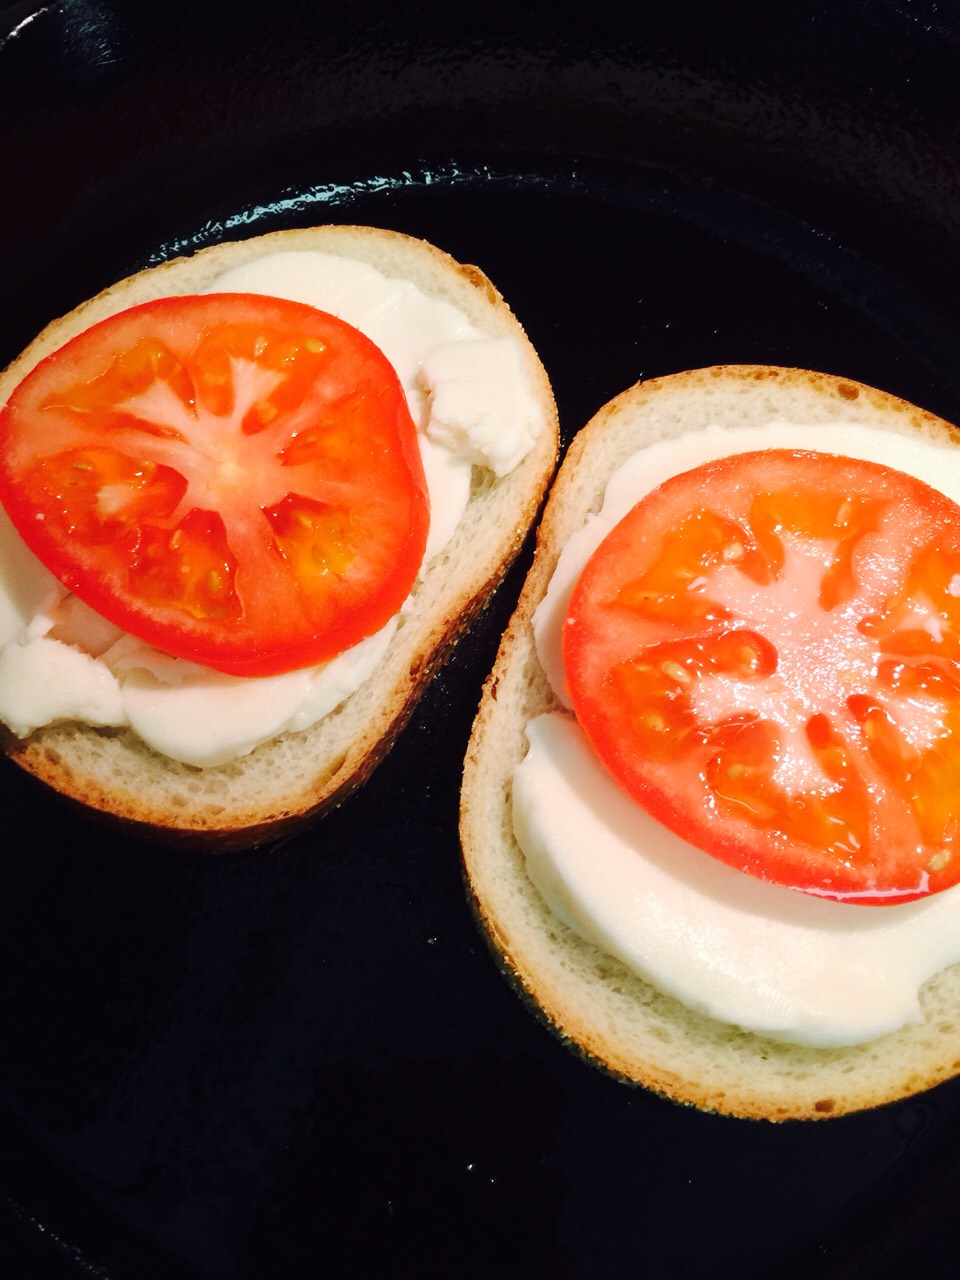 Tomato slices on top of cheese 😋